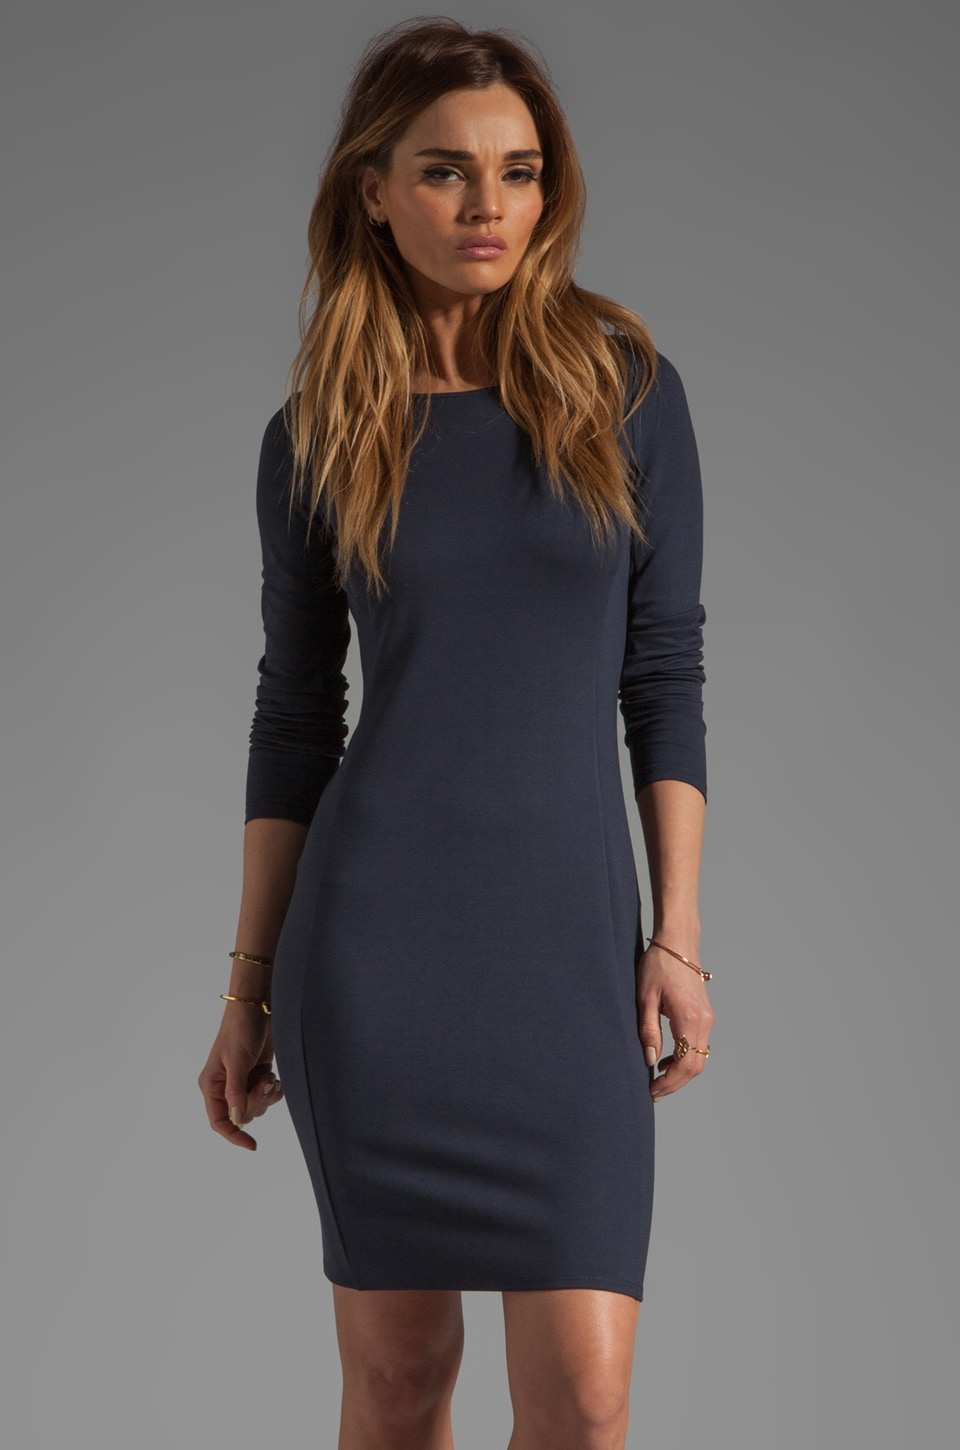 Theory Pryor Kalion Ponti Dress in True Navy